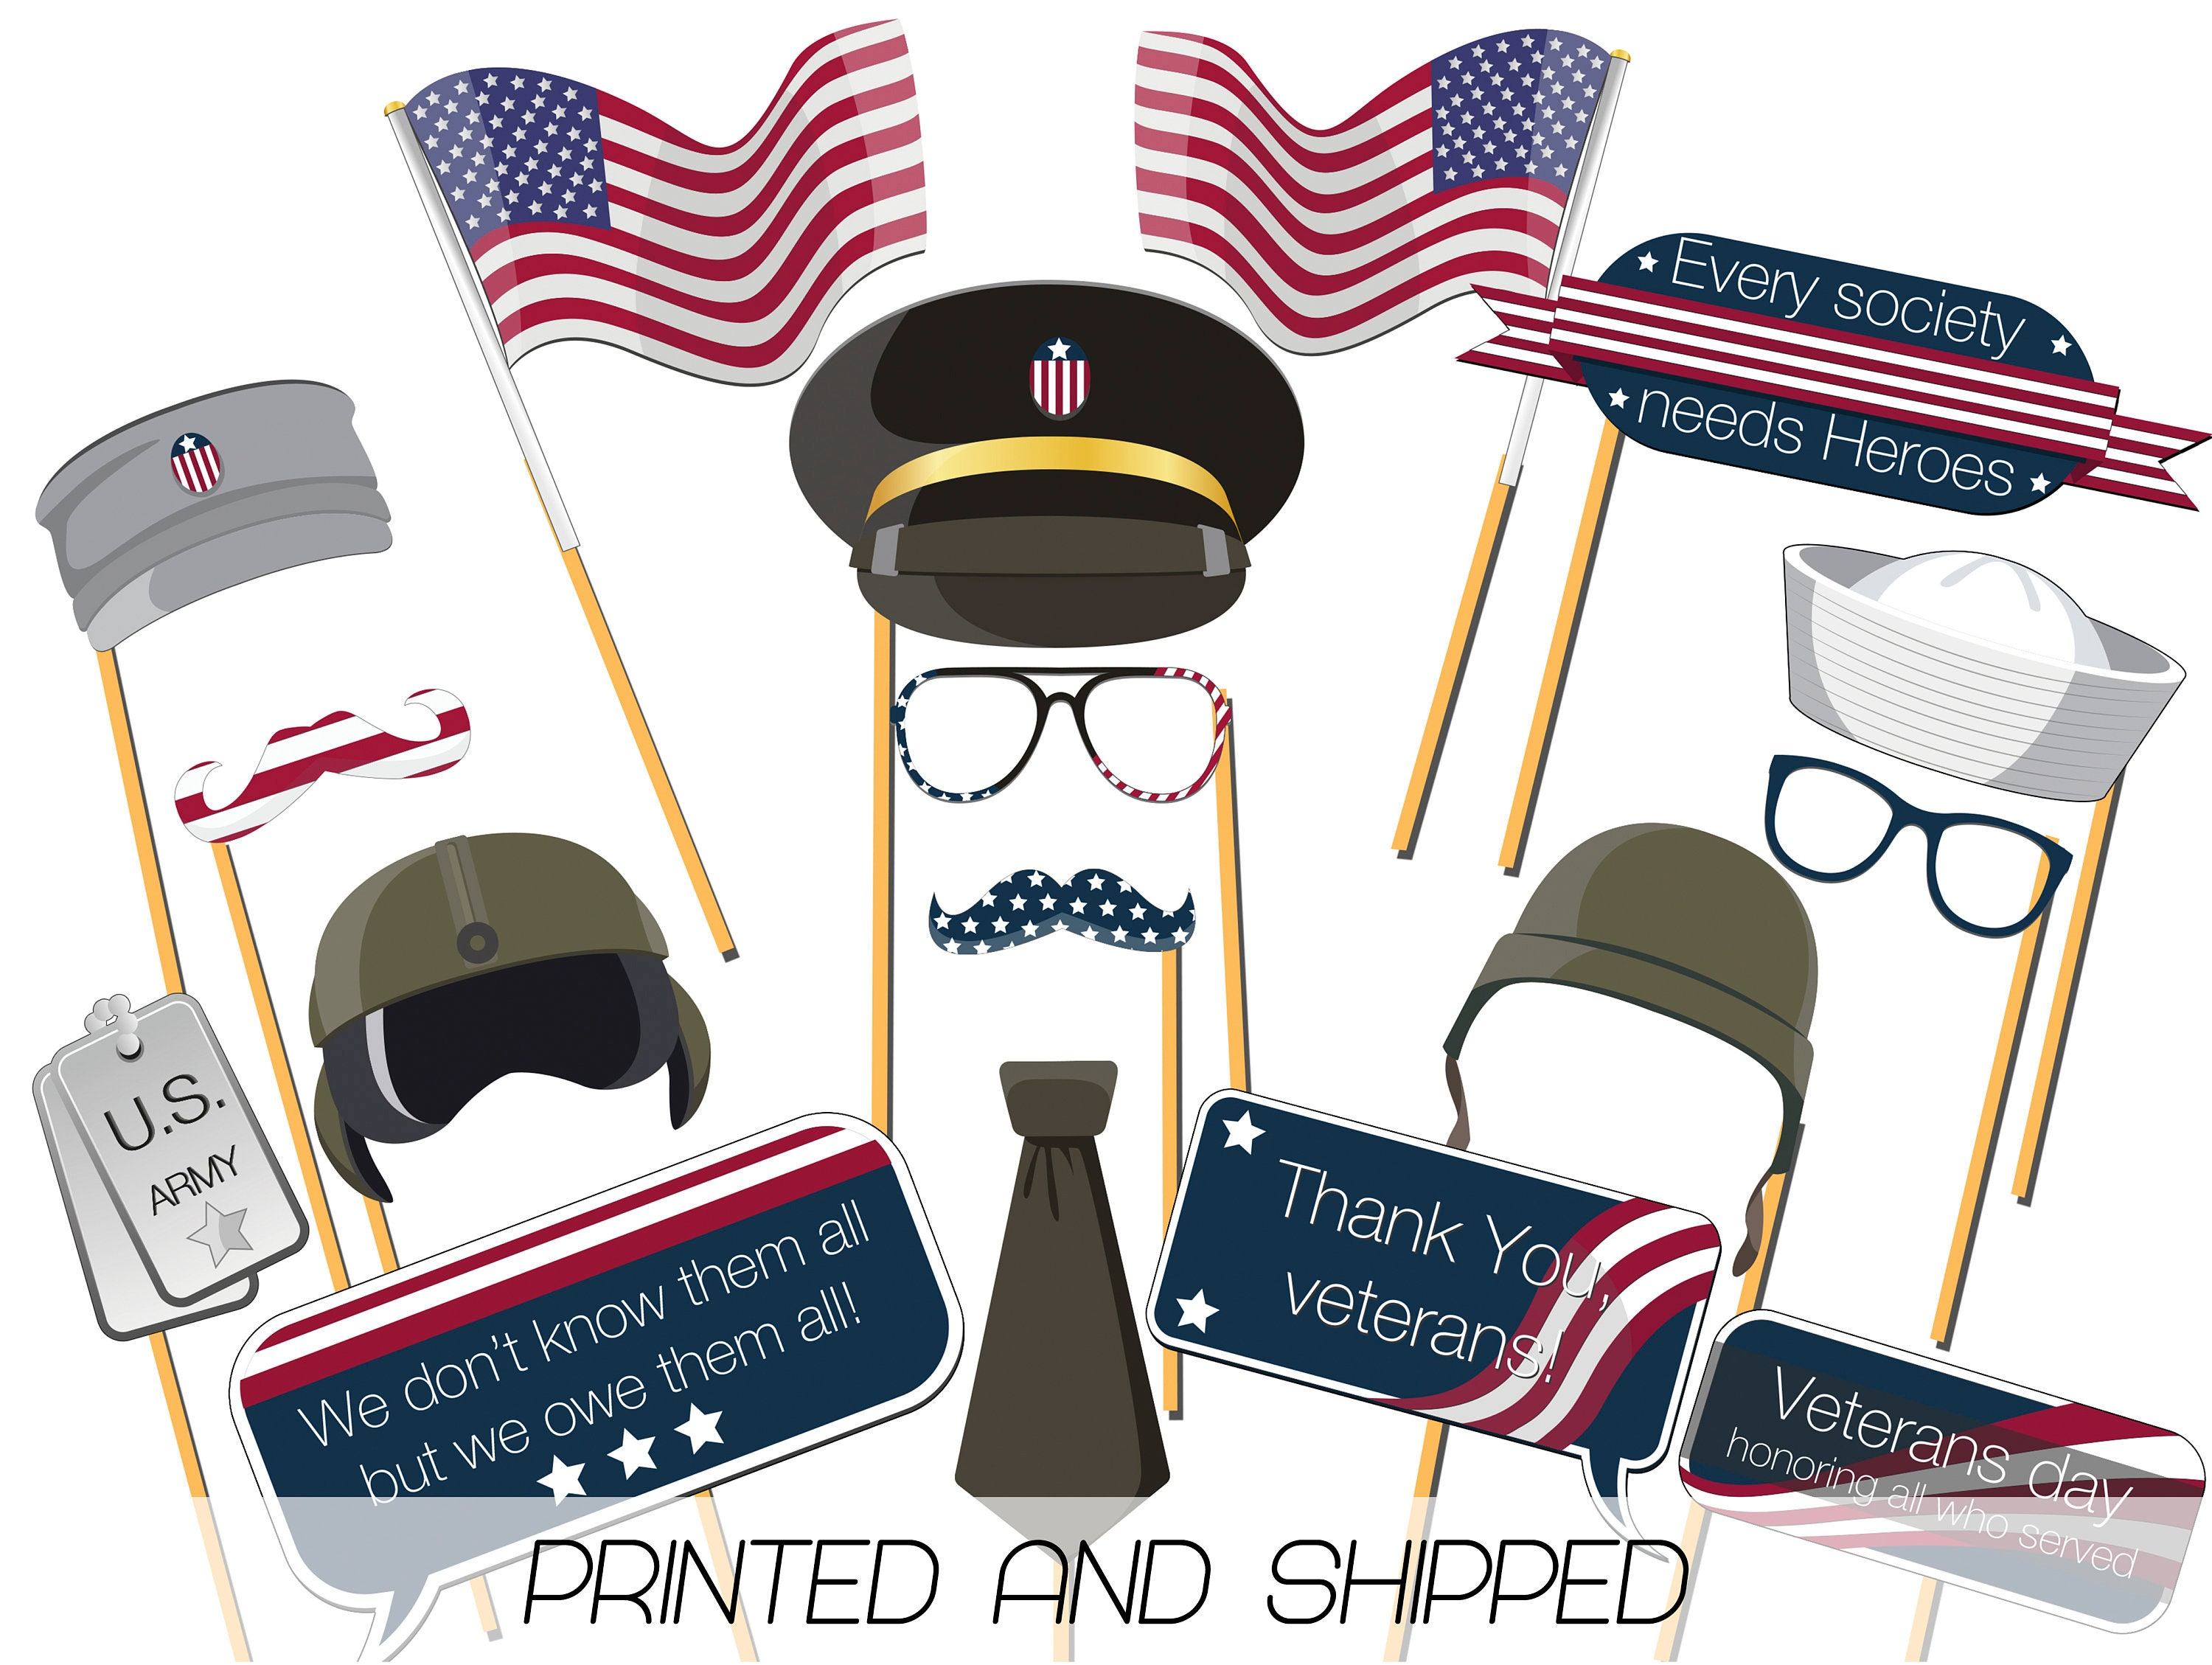 Custom veterans photo booth prop happy veterans day party photo props holiday photo booth props military photo props us army 2002013